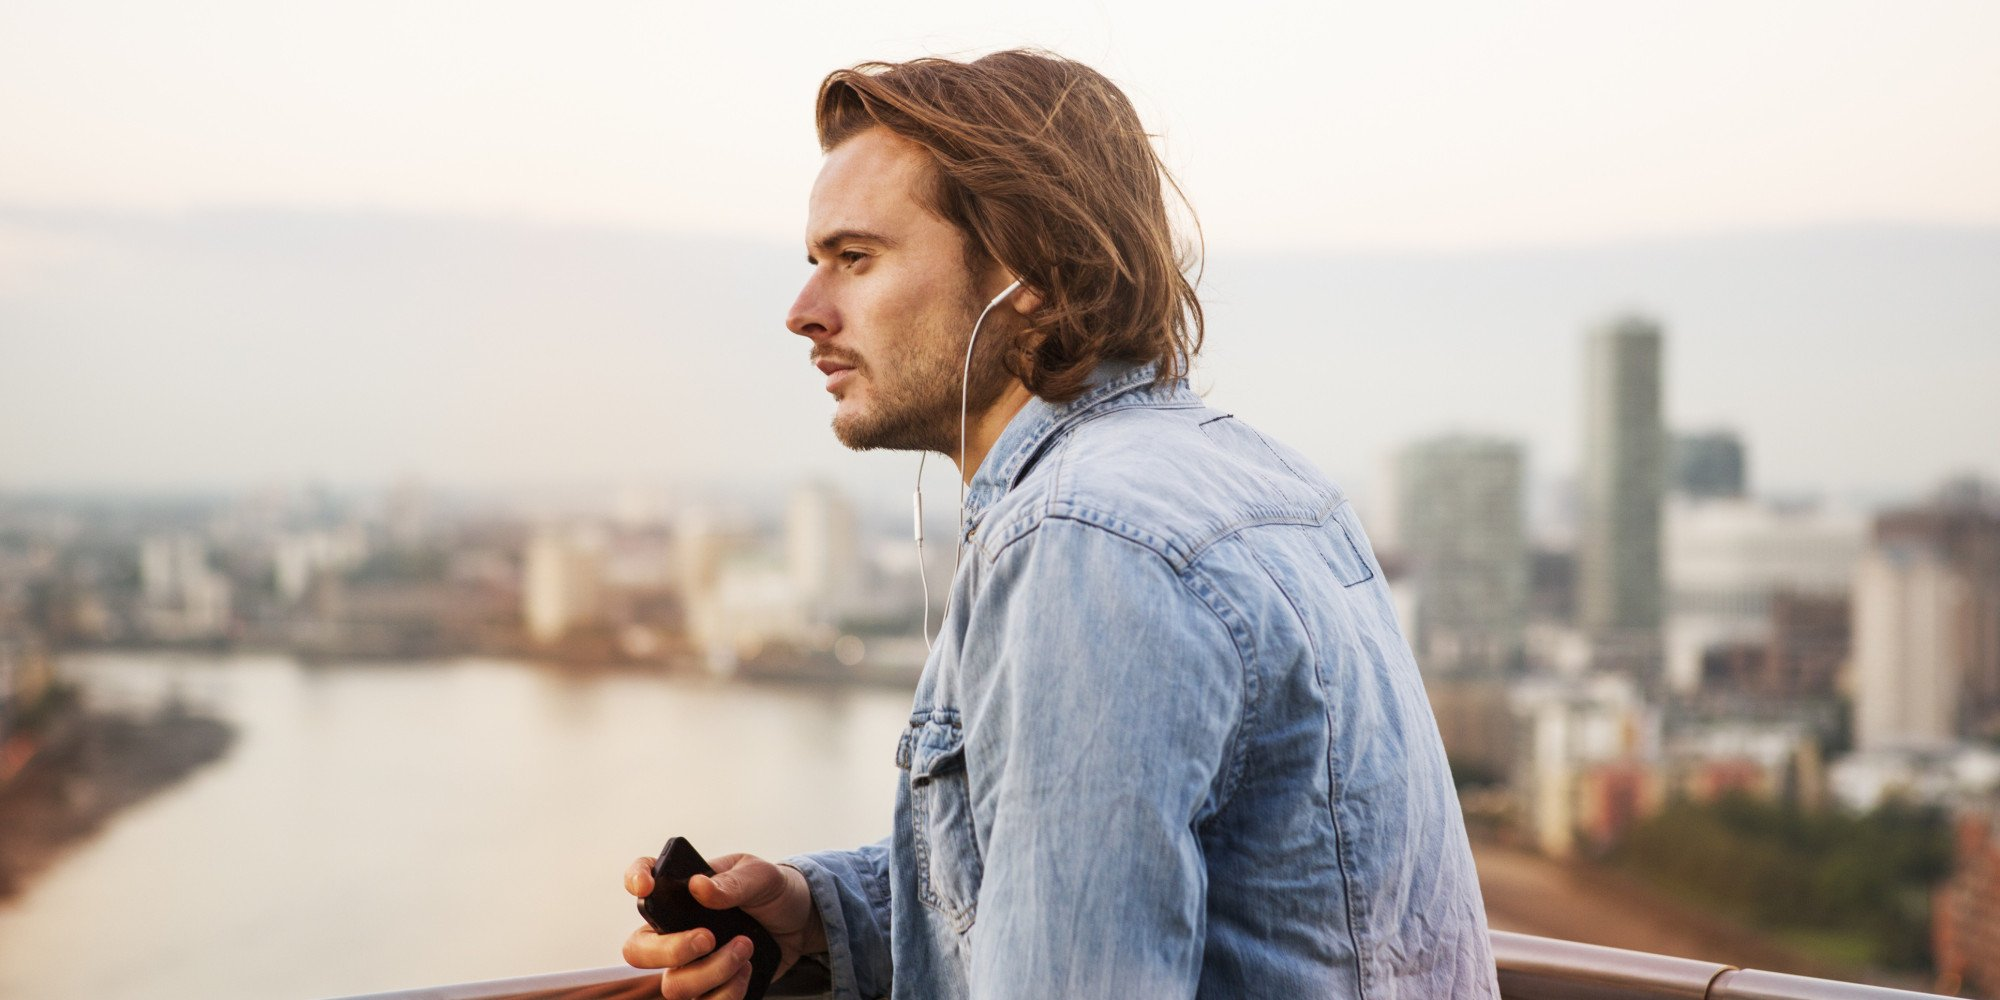 Man listening to music ovelooking city.